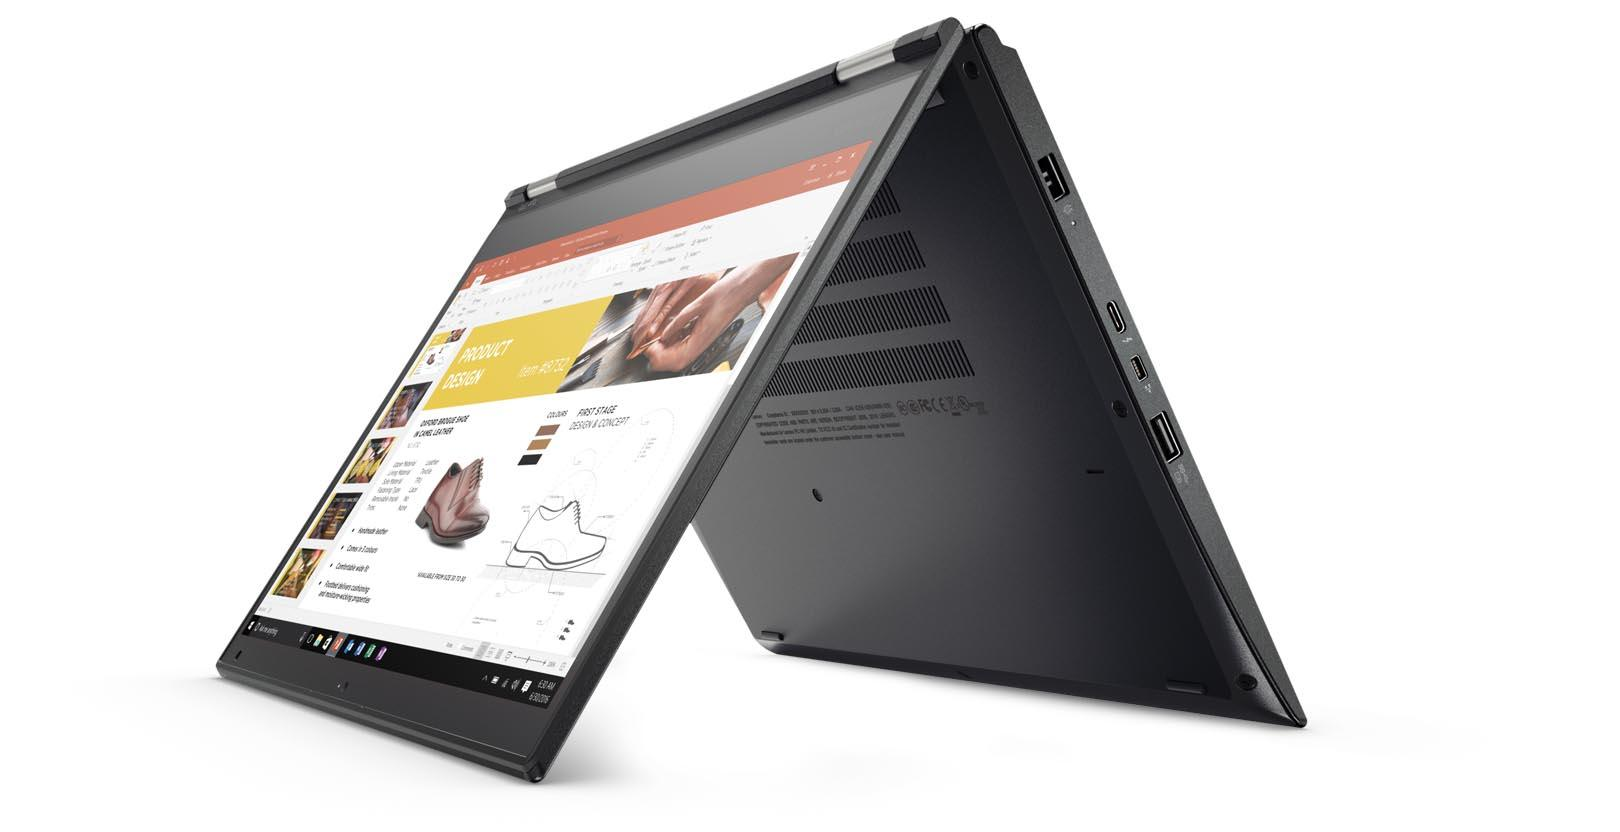 Lenovo ThinkPad Yoga 370 2-in-1 Laptop 13.3' FHD Touch Flip Intel i5-7200U 8GB RAM 256GB SSD Win10 Home 1.37kg 18.2mm 3 Yr Depot Wty